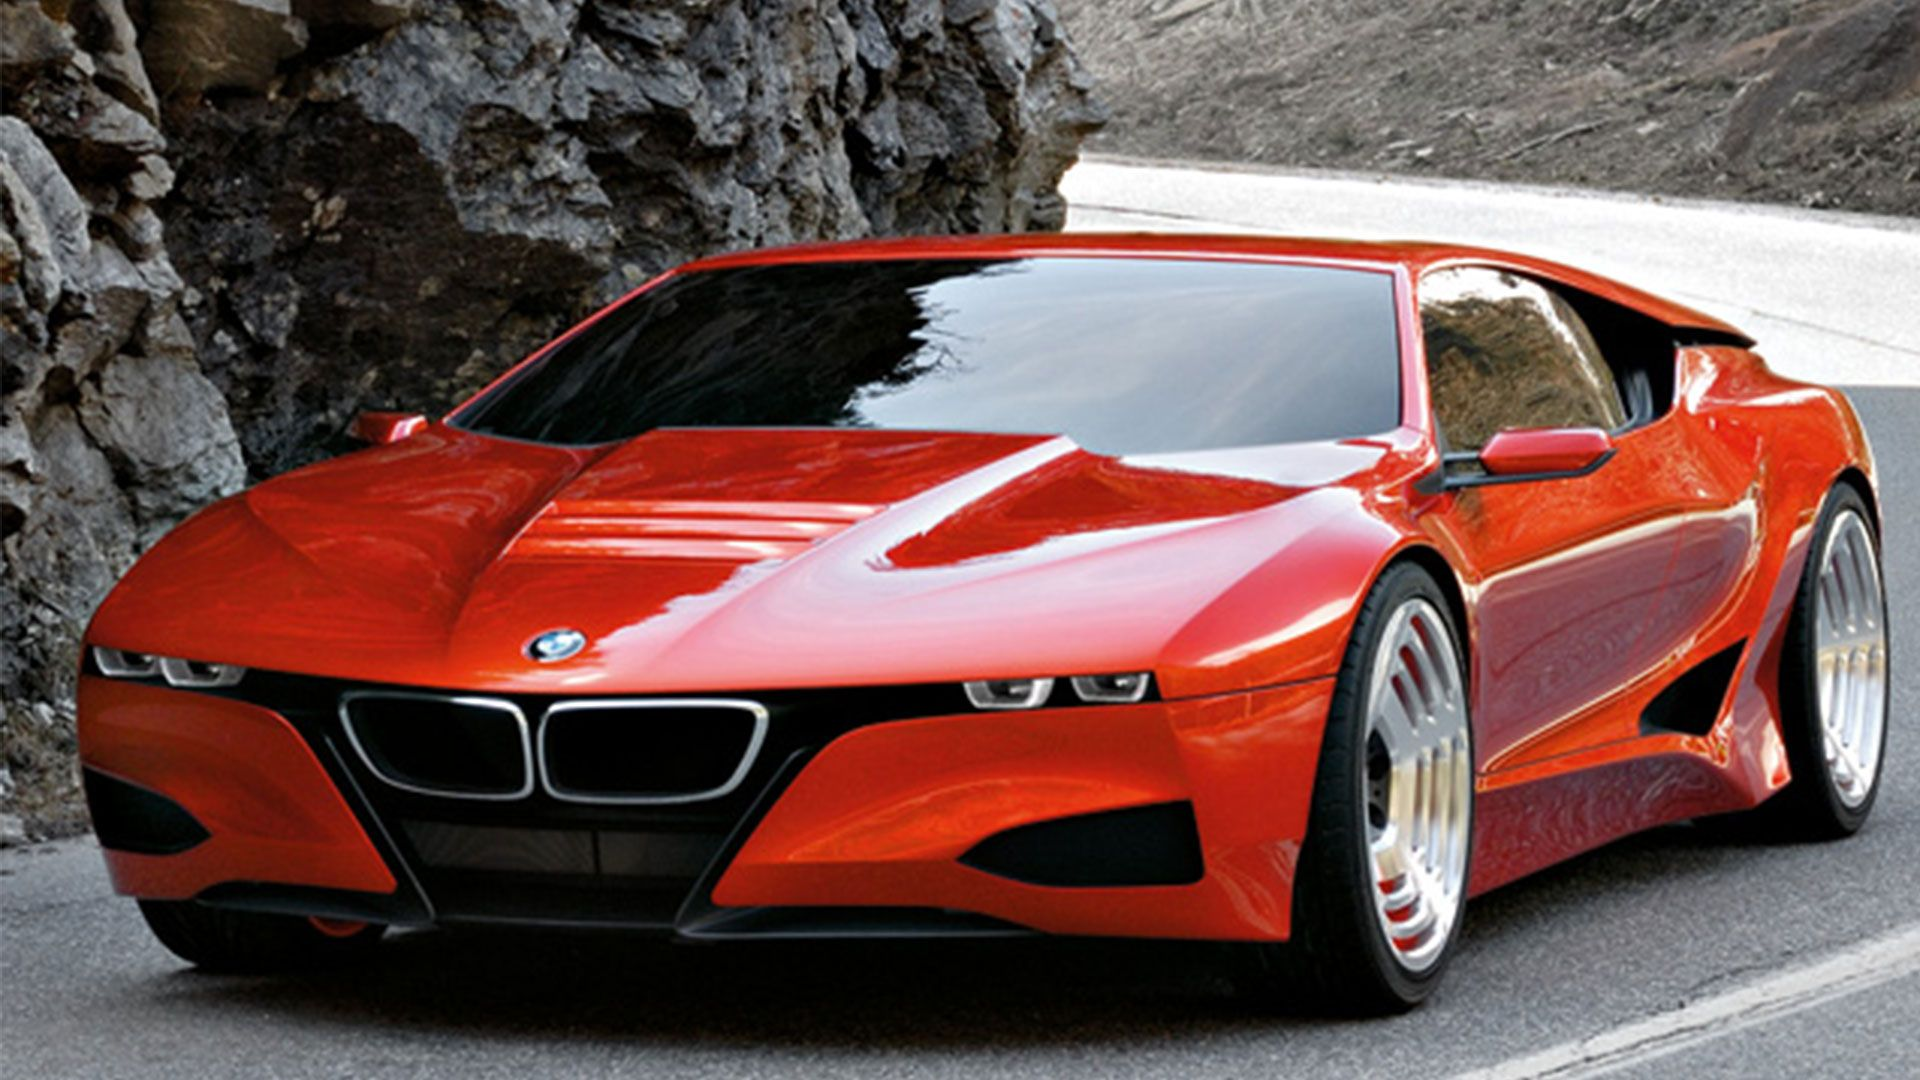 2016 Bmw Is The Featured Model Red Image Added In Car Pictures Category By Author On Jun